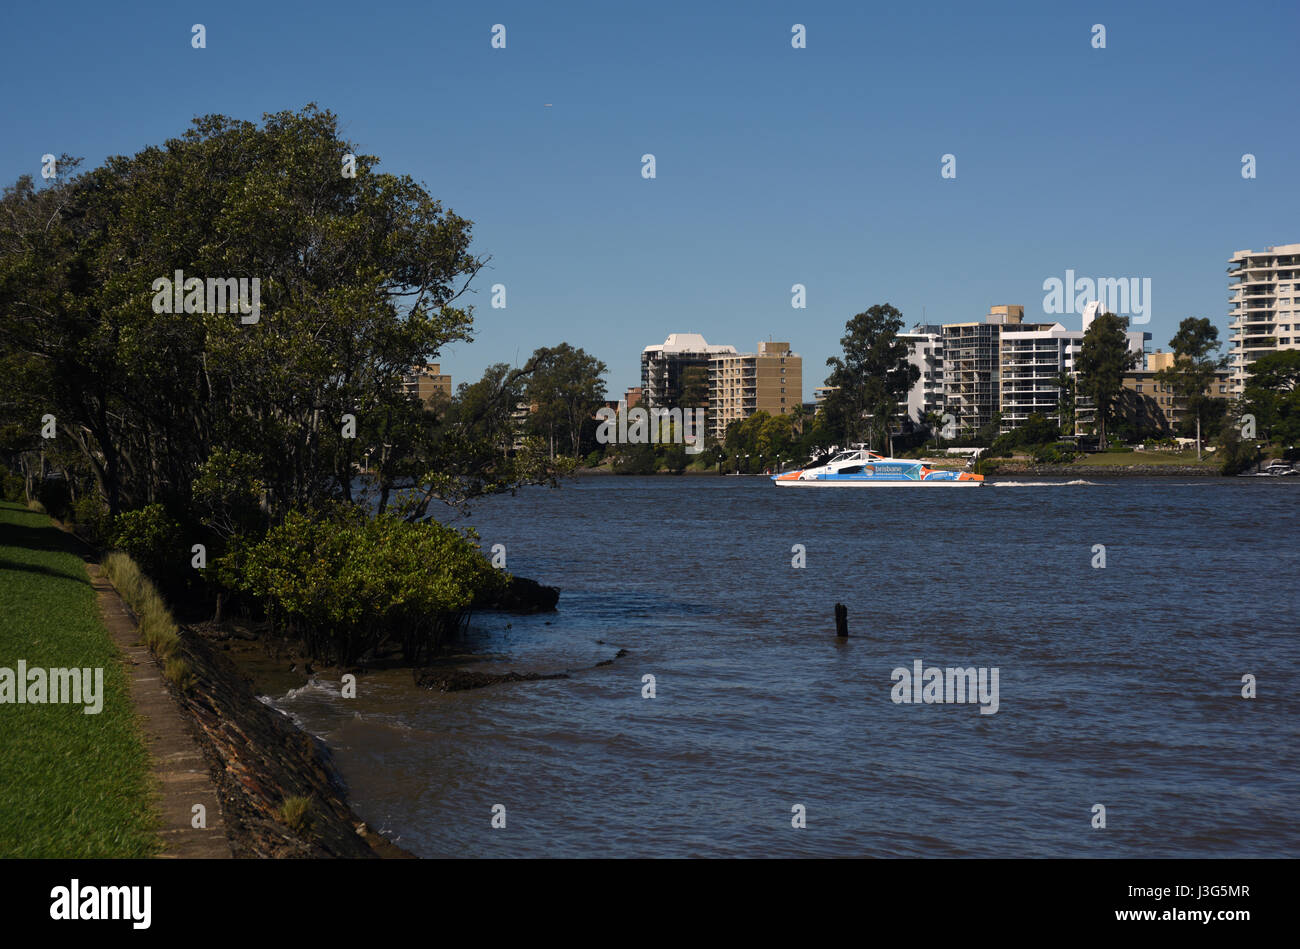 Brisbane, Australia: CityCat ferry crossing the Brisbane River at St Lucia - Stock Image